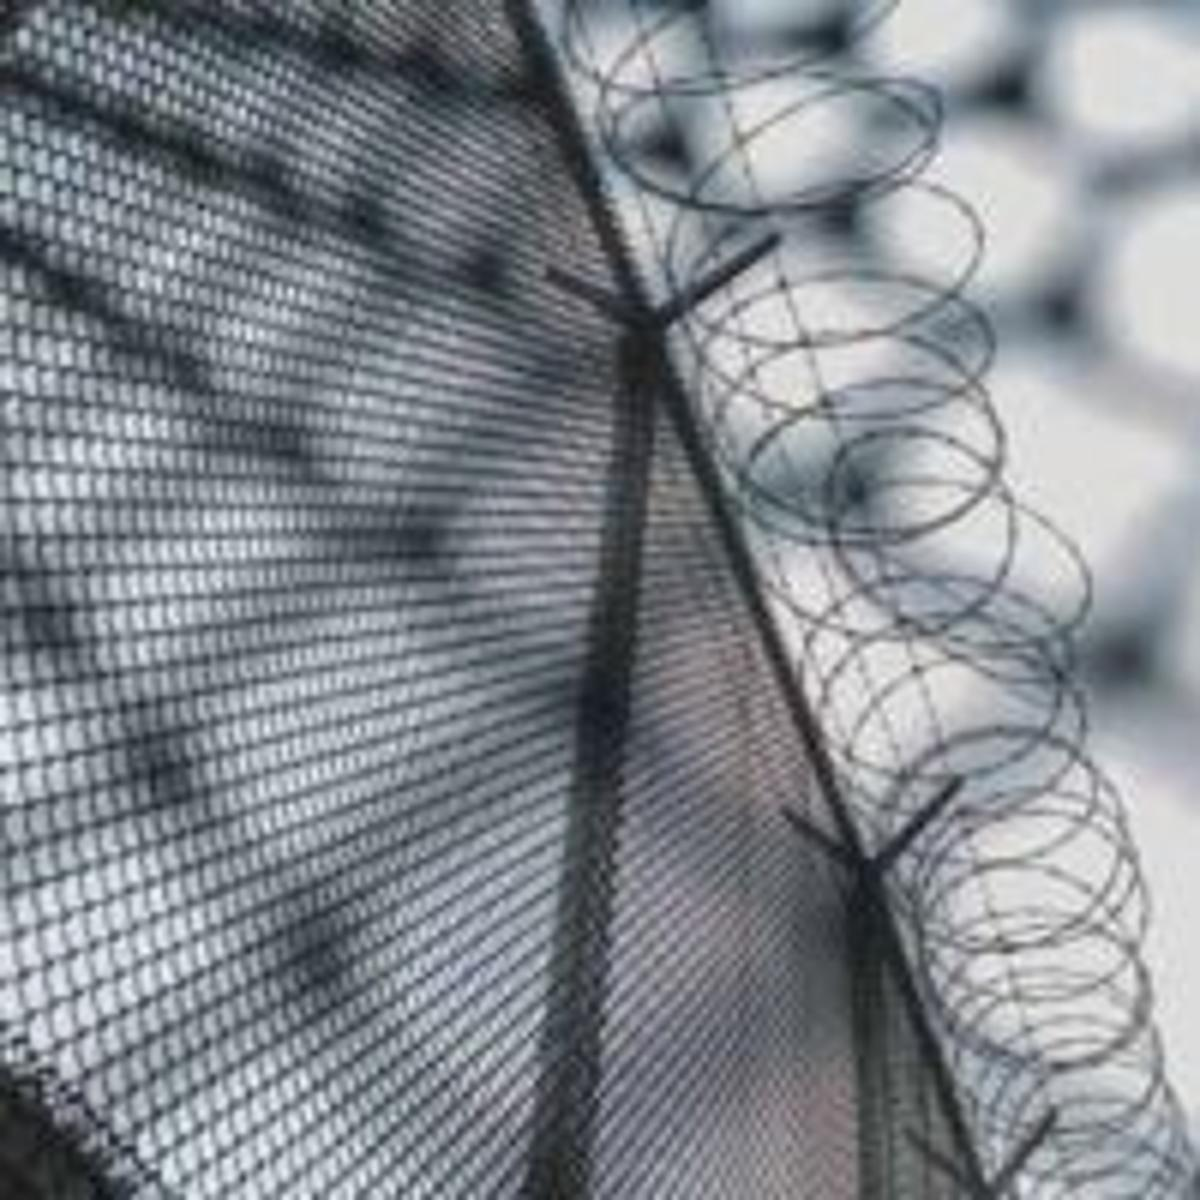 Tompkins County Jail Expansion: The Murky Reasons for